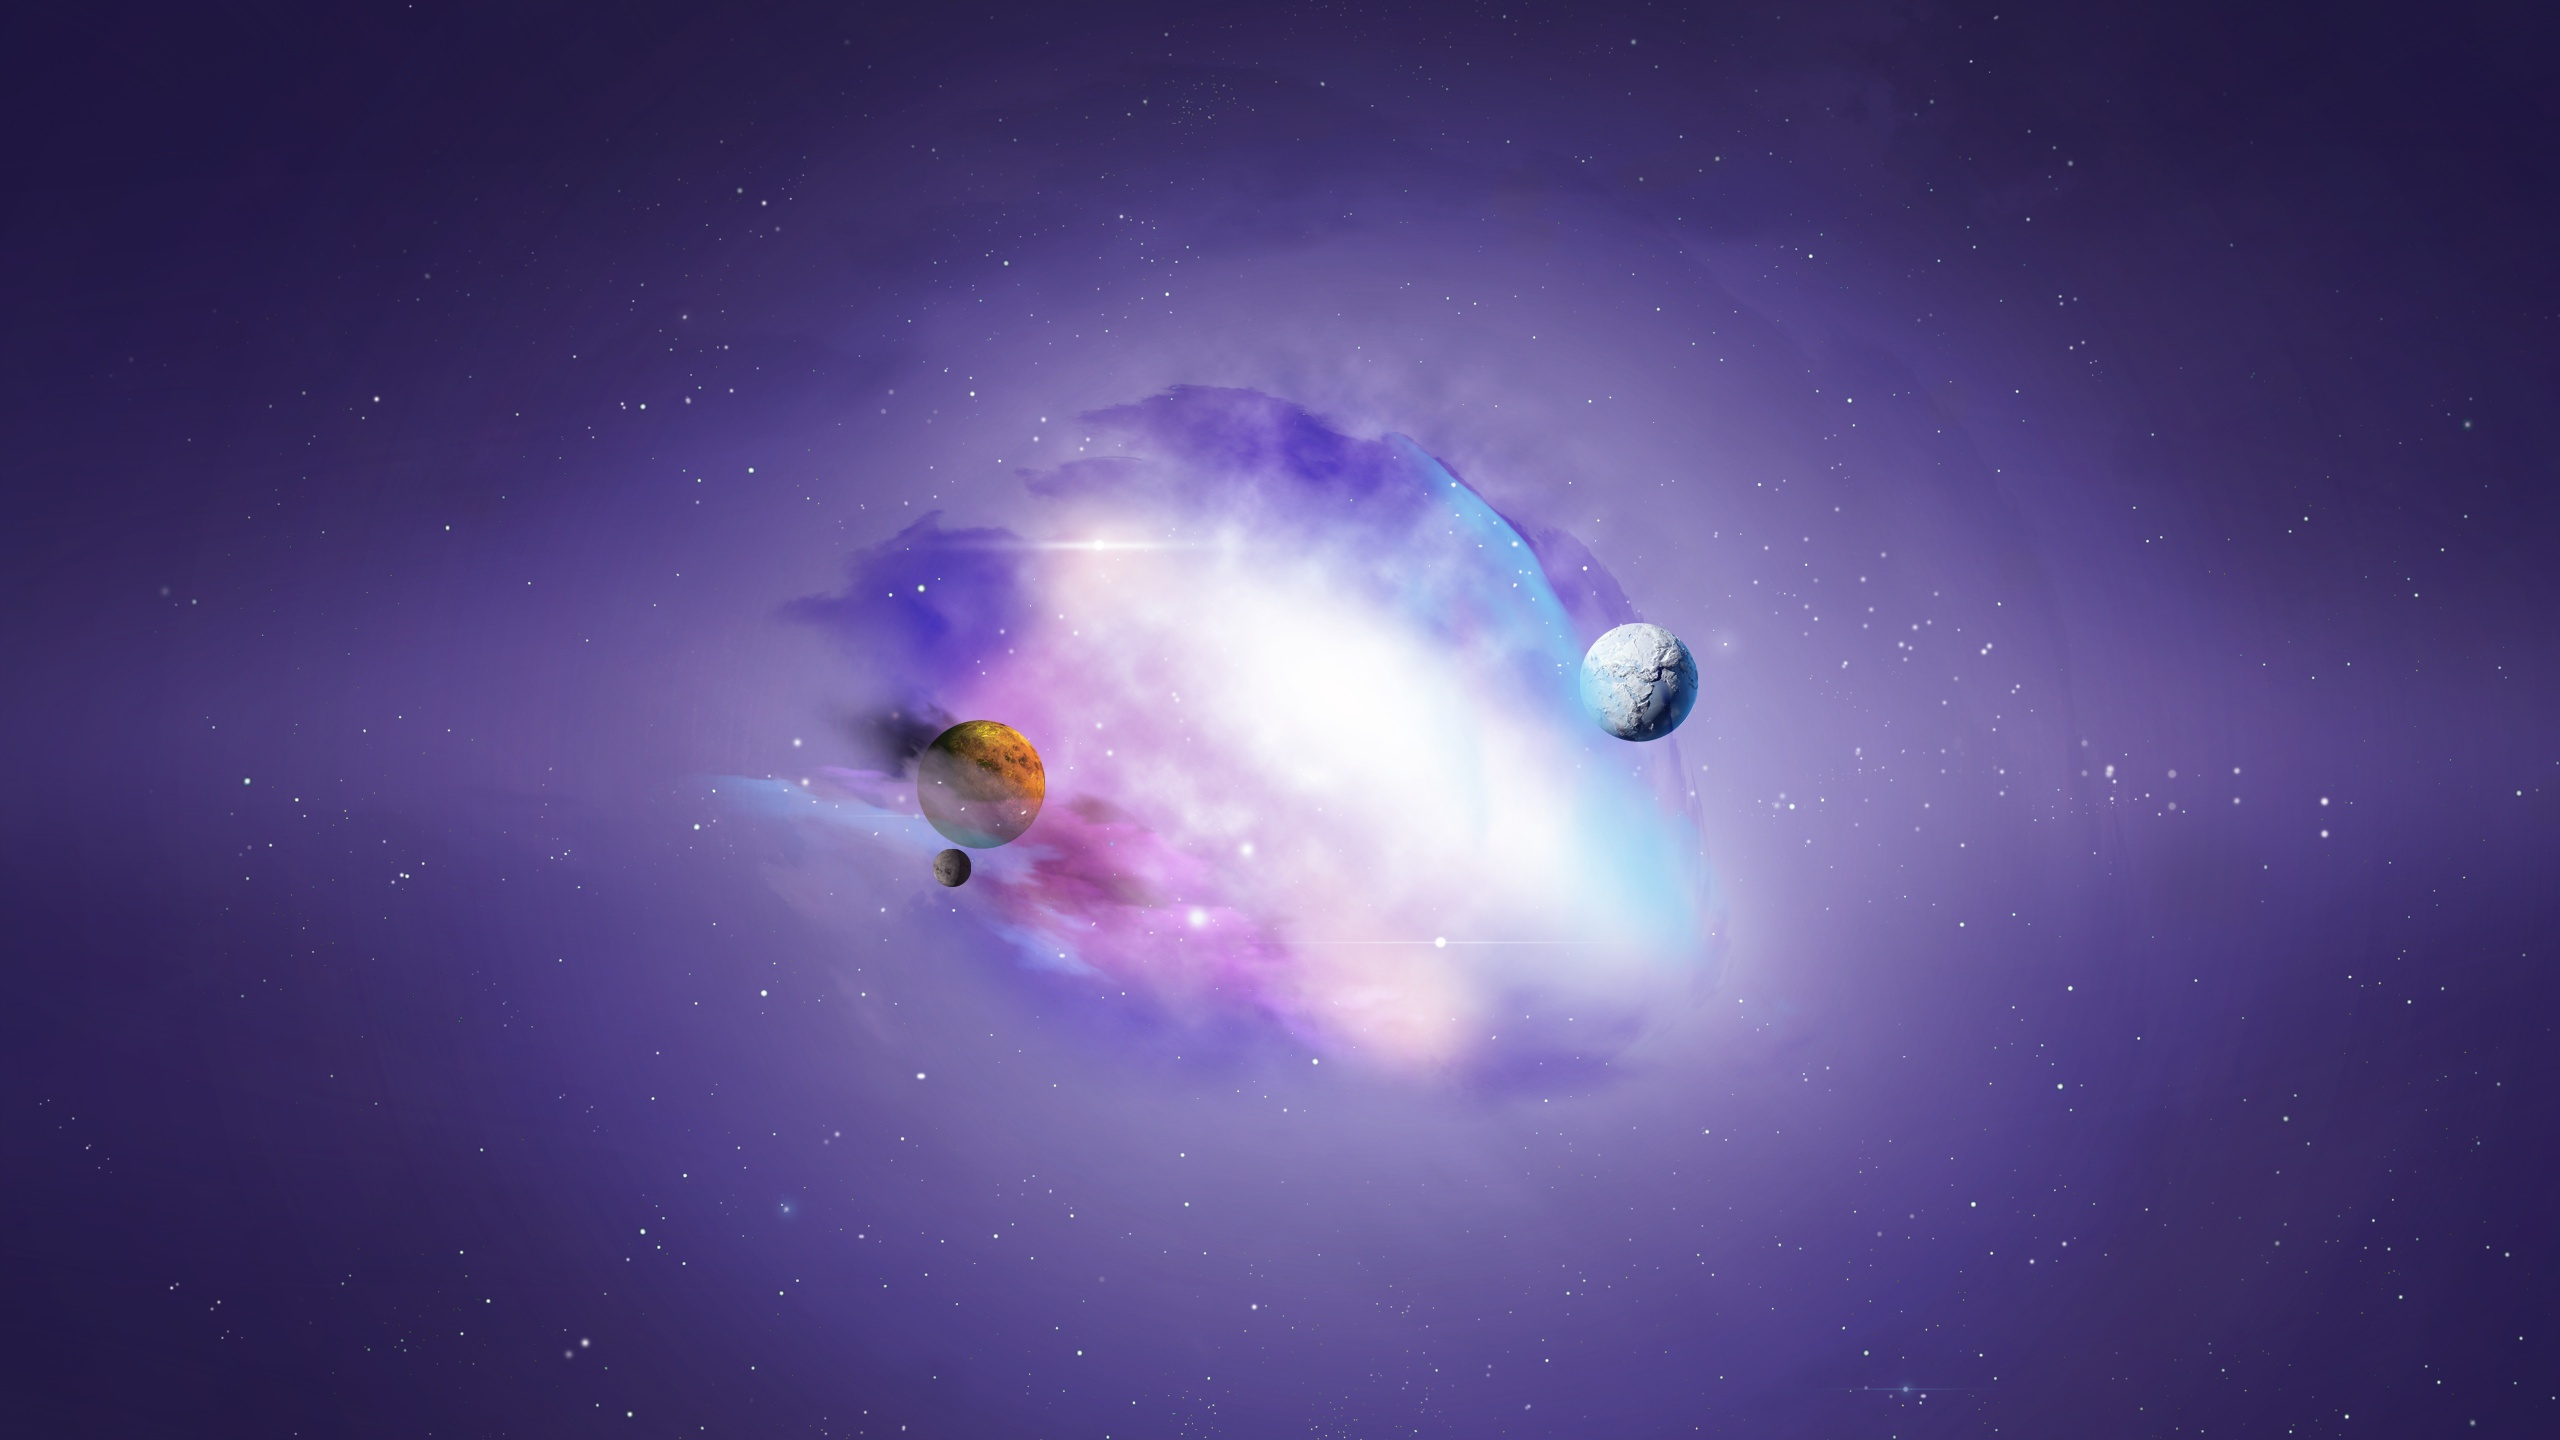 purple galaxy universe wallpaper desktop 2560x1440 2560x1440